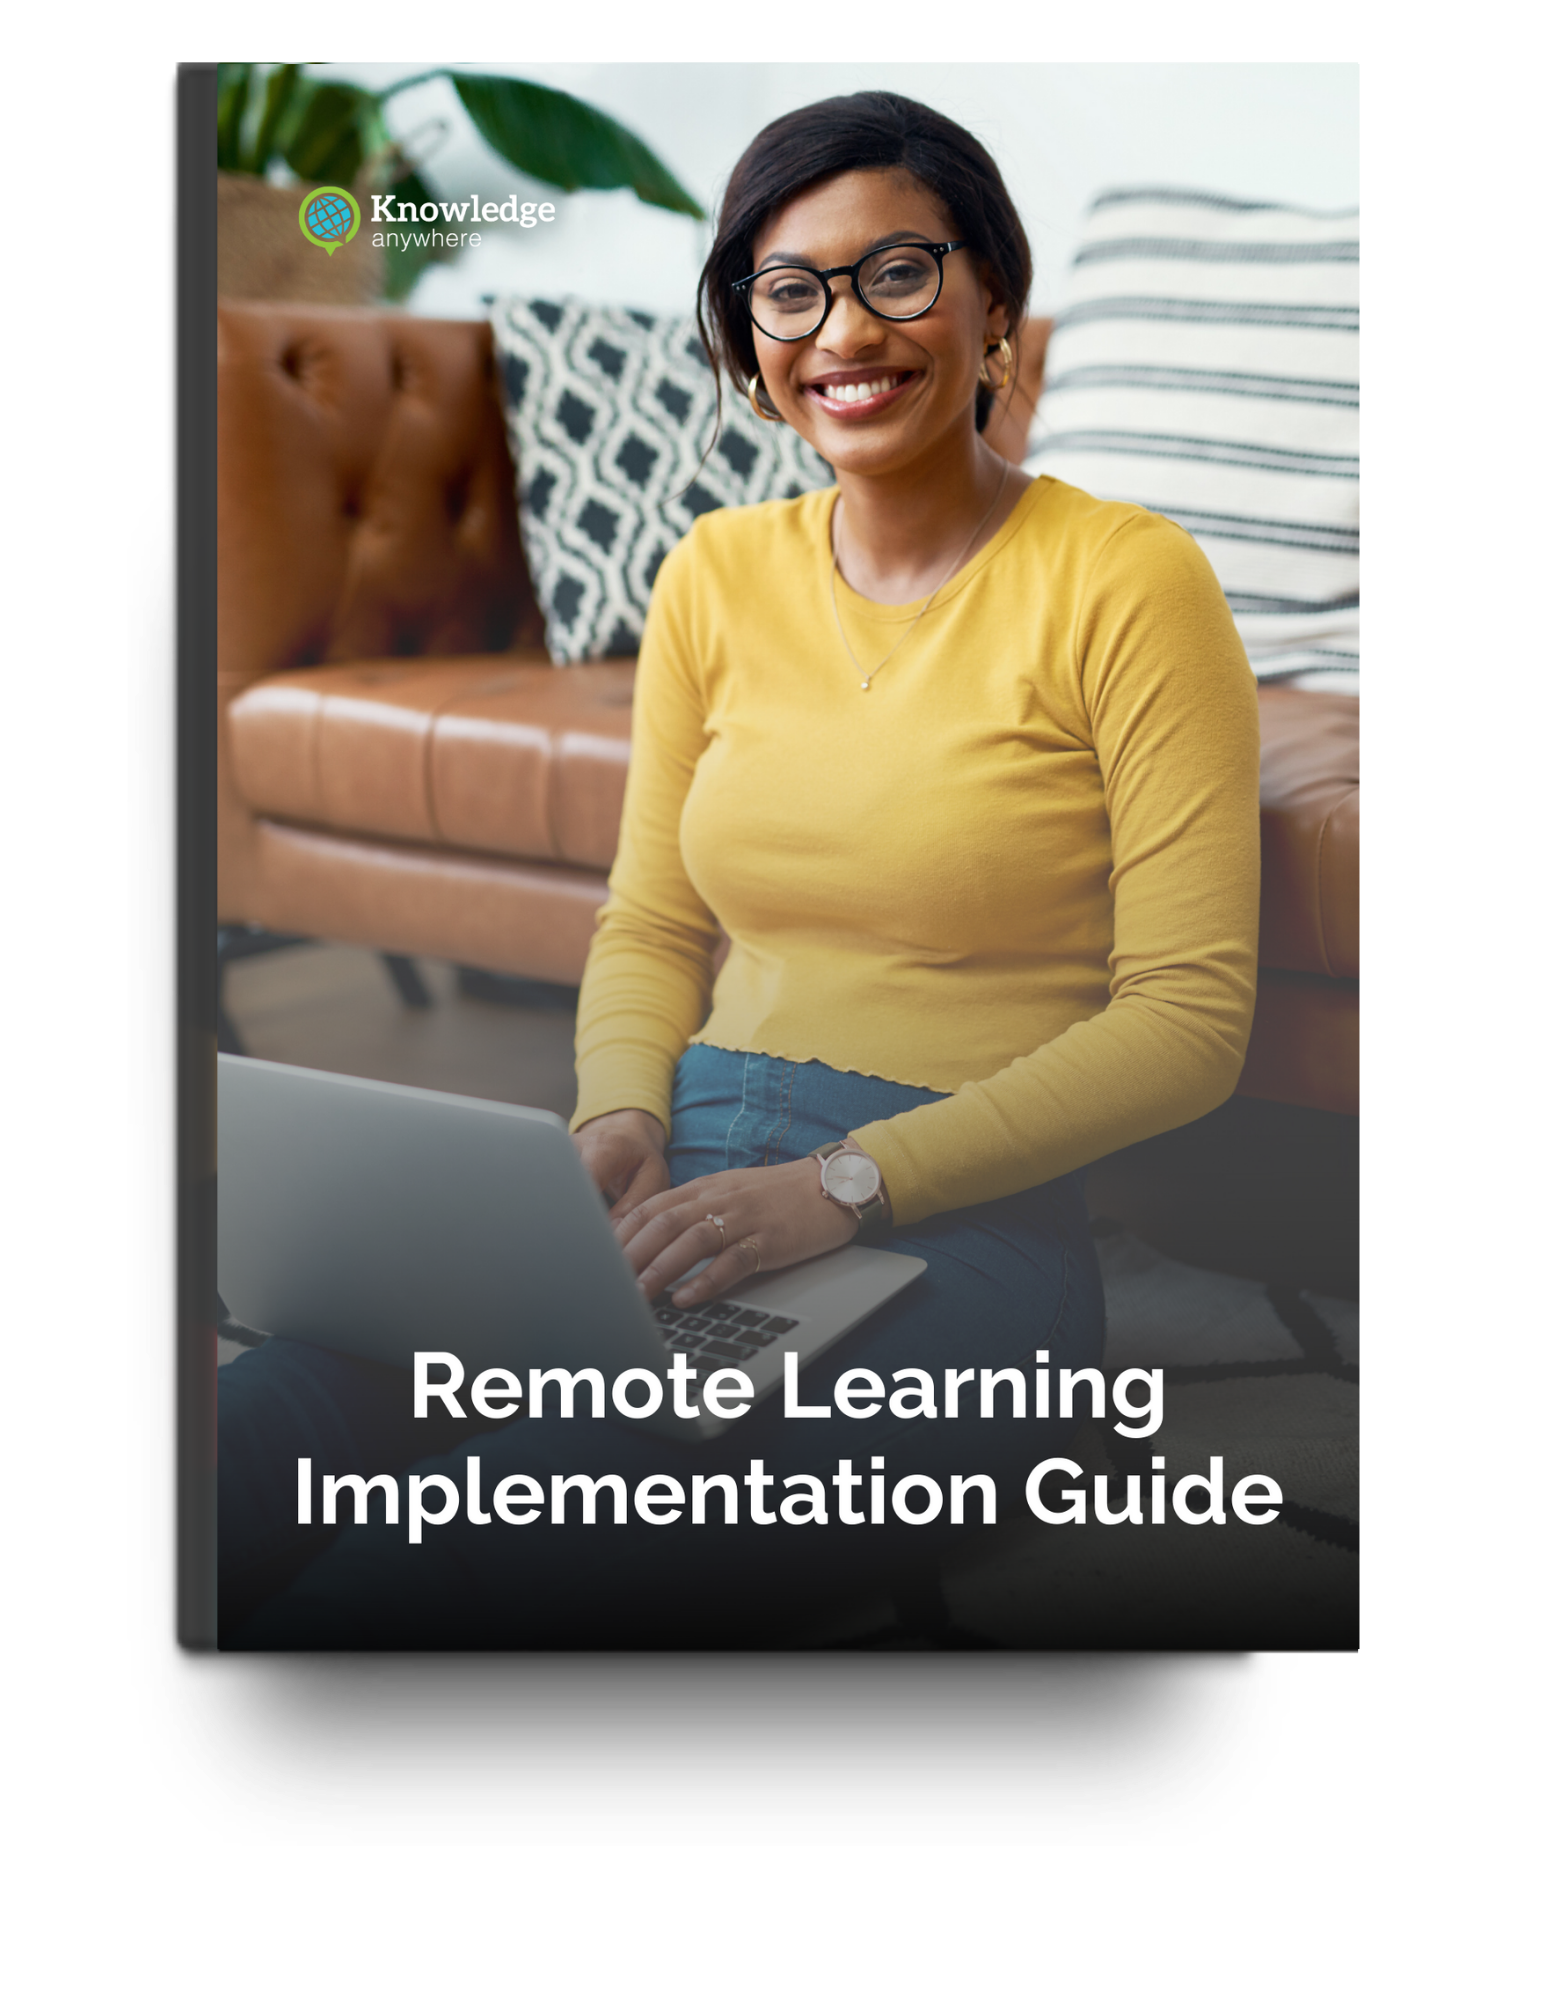 Remote Learning Implementation Guide